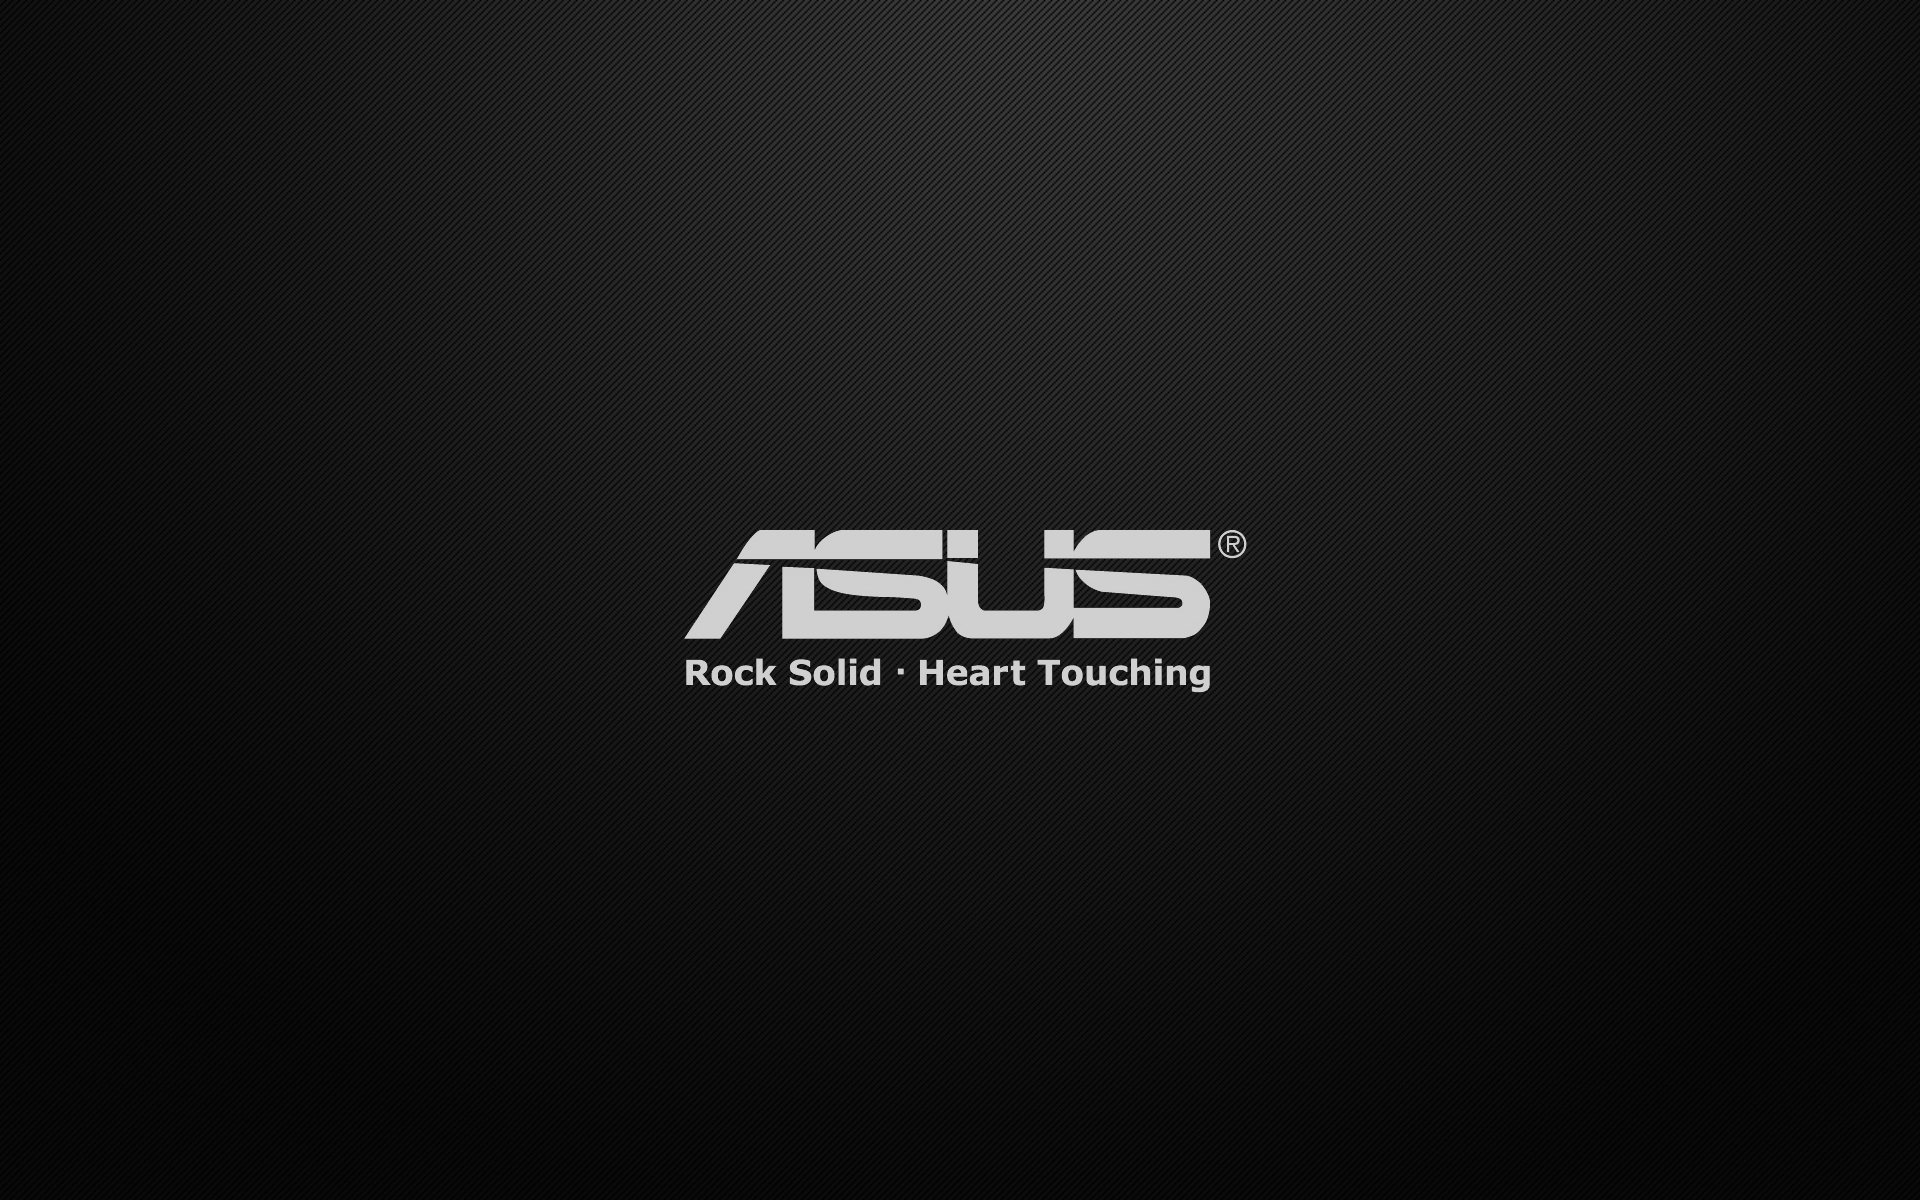 164 Asus HD Wallpapers | Backgrounds - Wallpaper Abyss